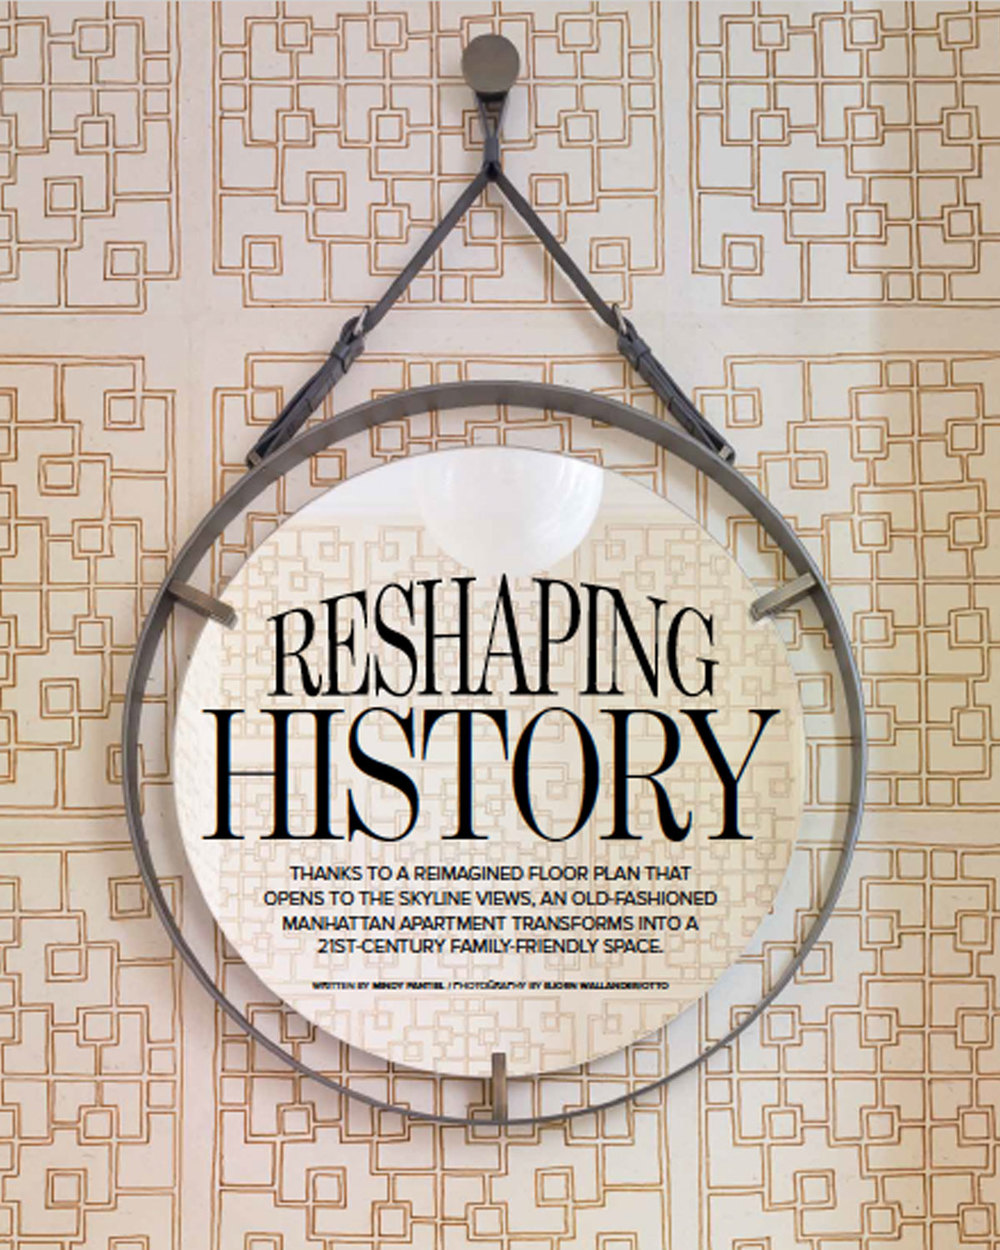 Luxe Reshaping History